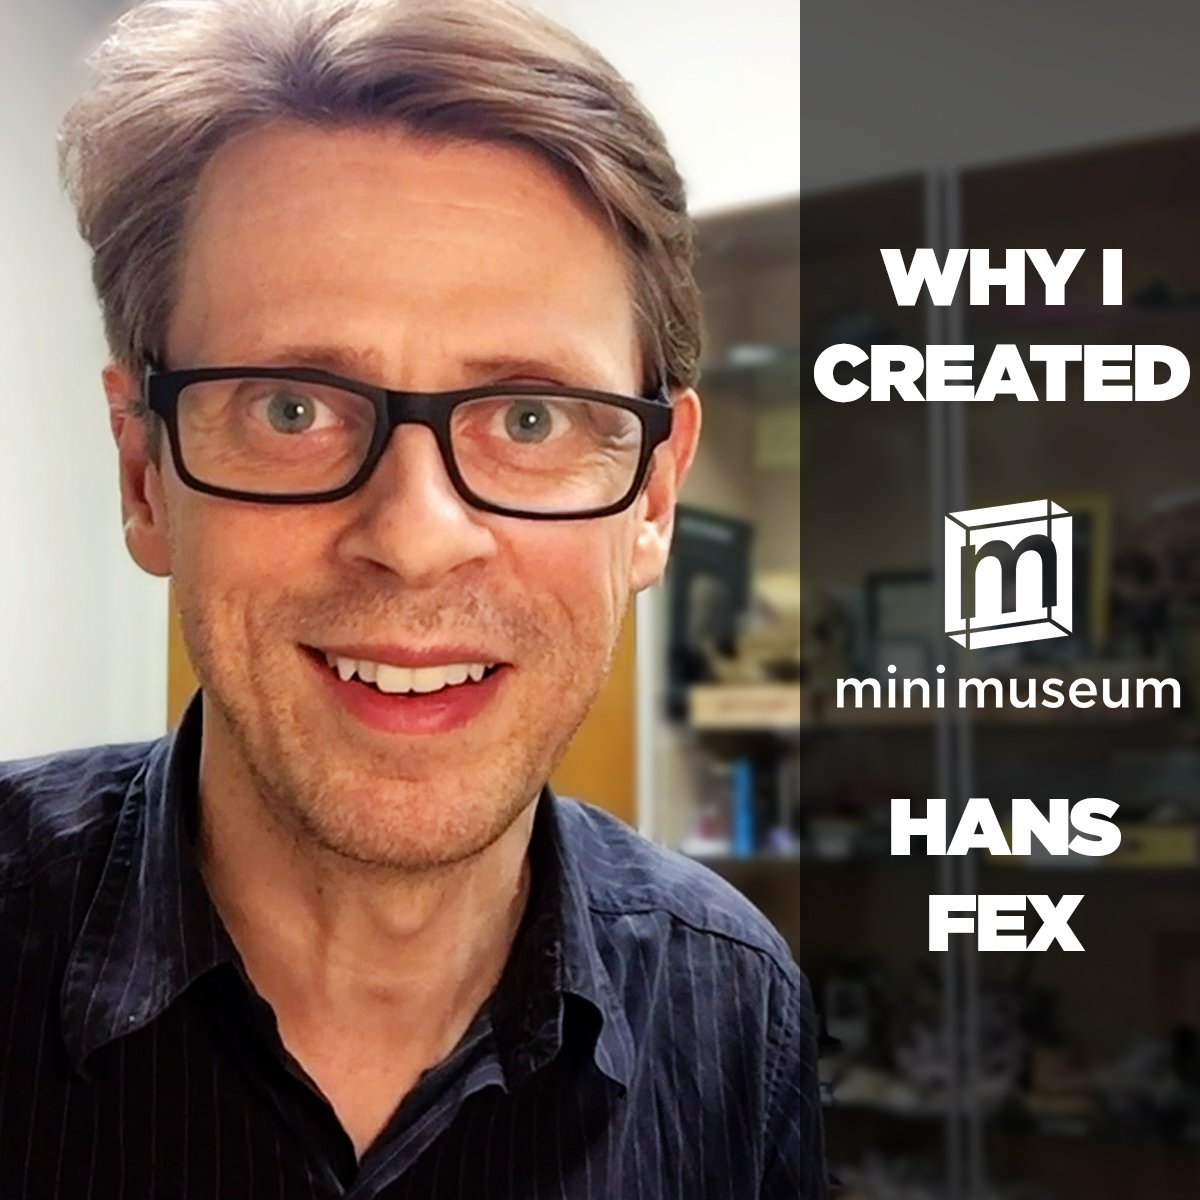 Why I Created Mini Museum by Hans Fex